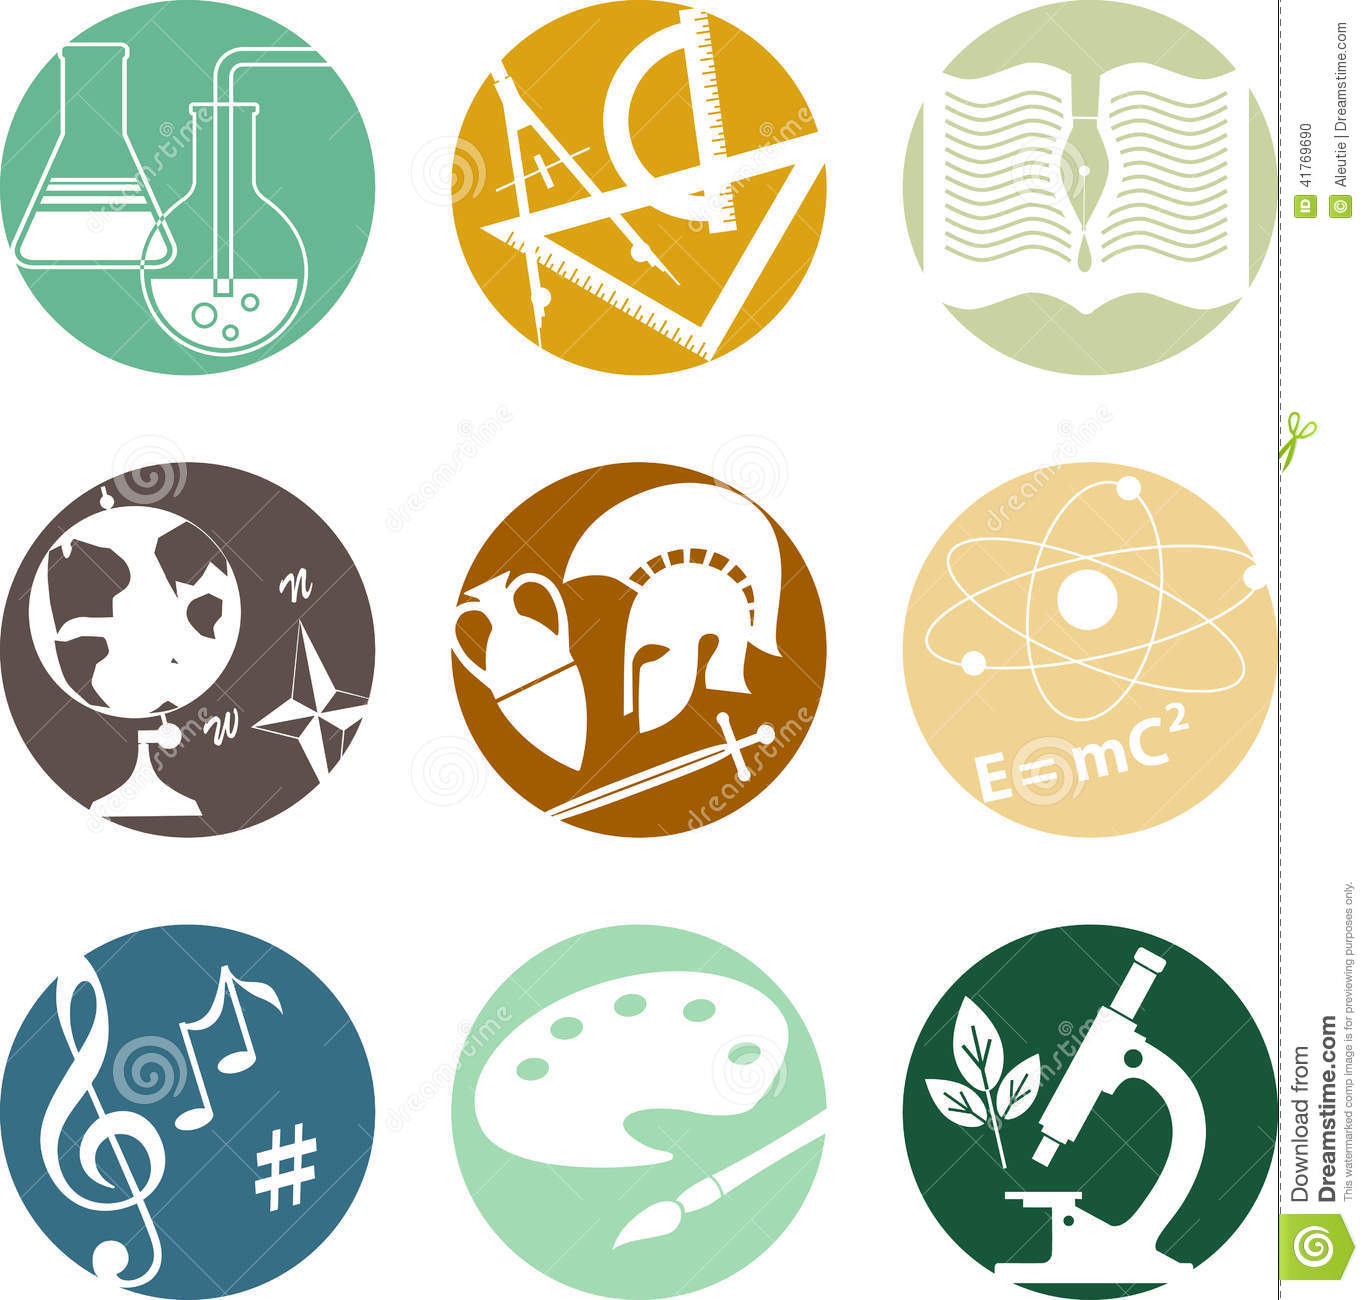 Free clipart school subjects banner download School subjects icons | Clipart Panda - Free Clipart Images banner download